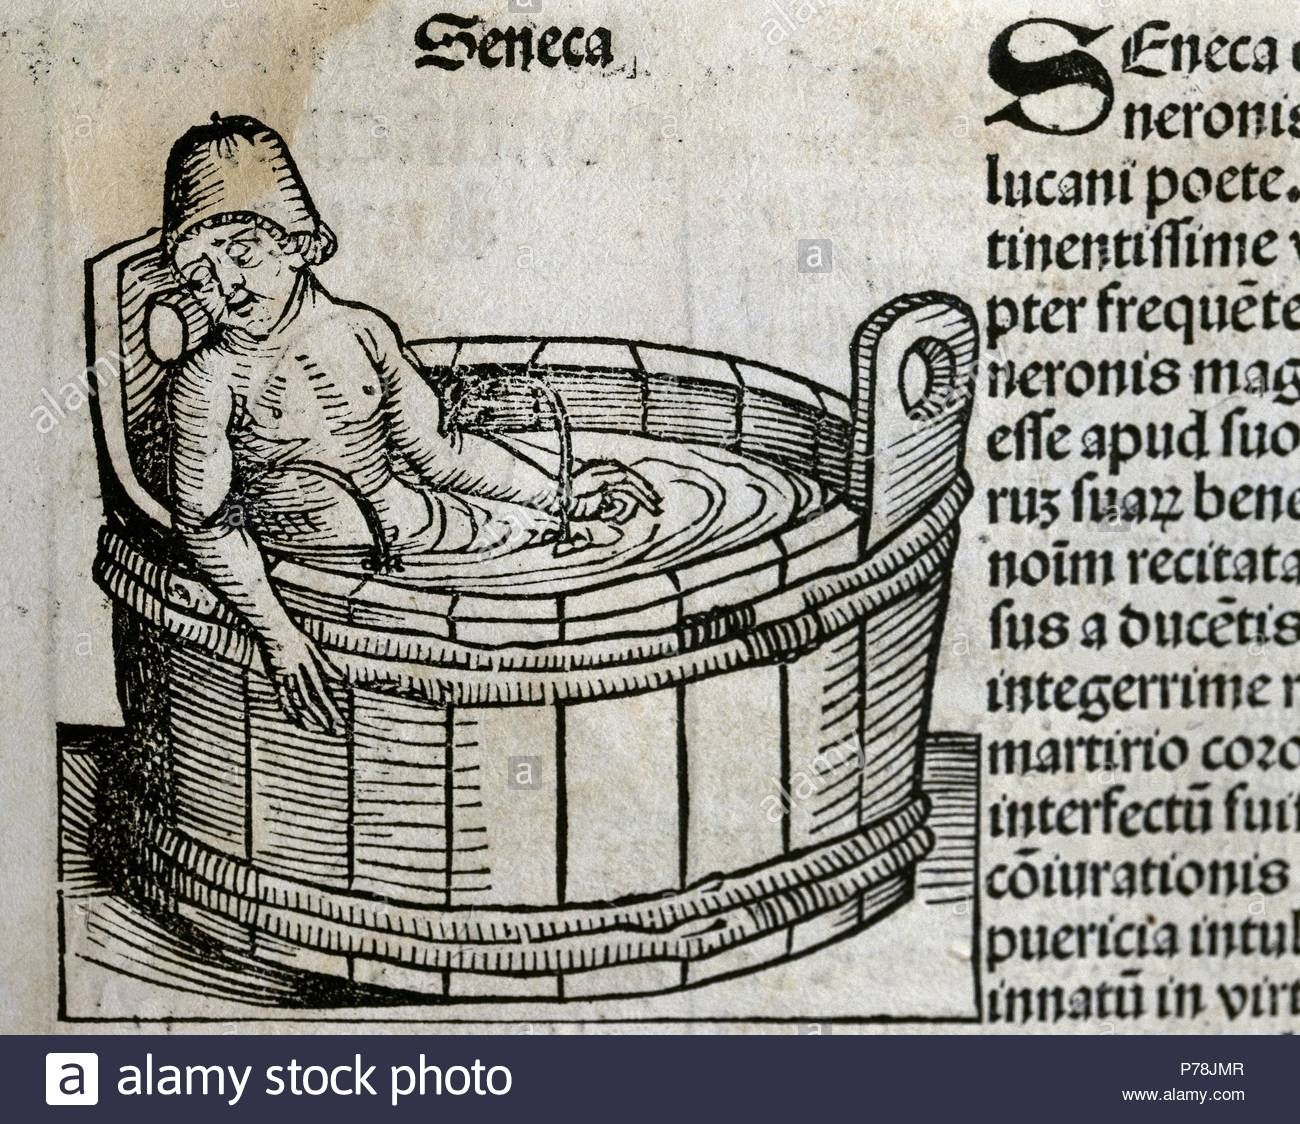 Seneca the Younger (4BC-65AD). Roman Stoic philosopher. Suicide. Engraving by Hatman at Liber Chronicarum. 15th century. - Stock Image